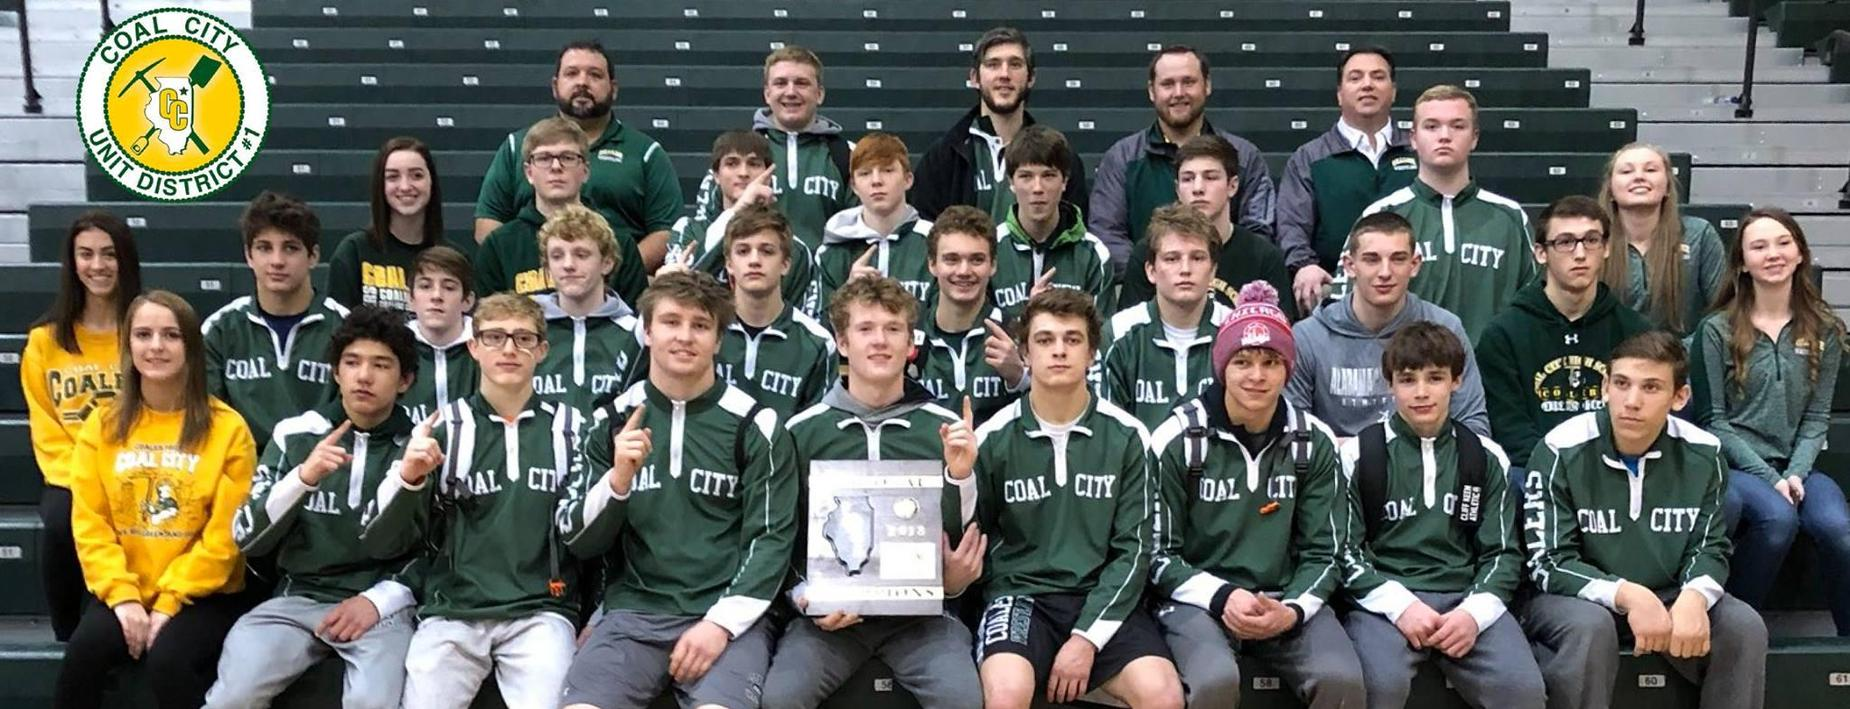 Wrestlers captured 3rd at state as a team